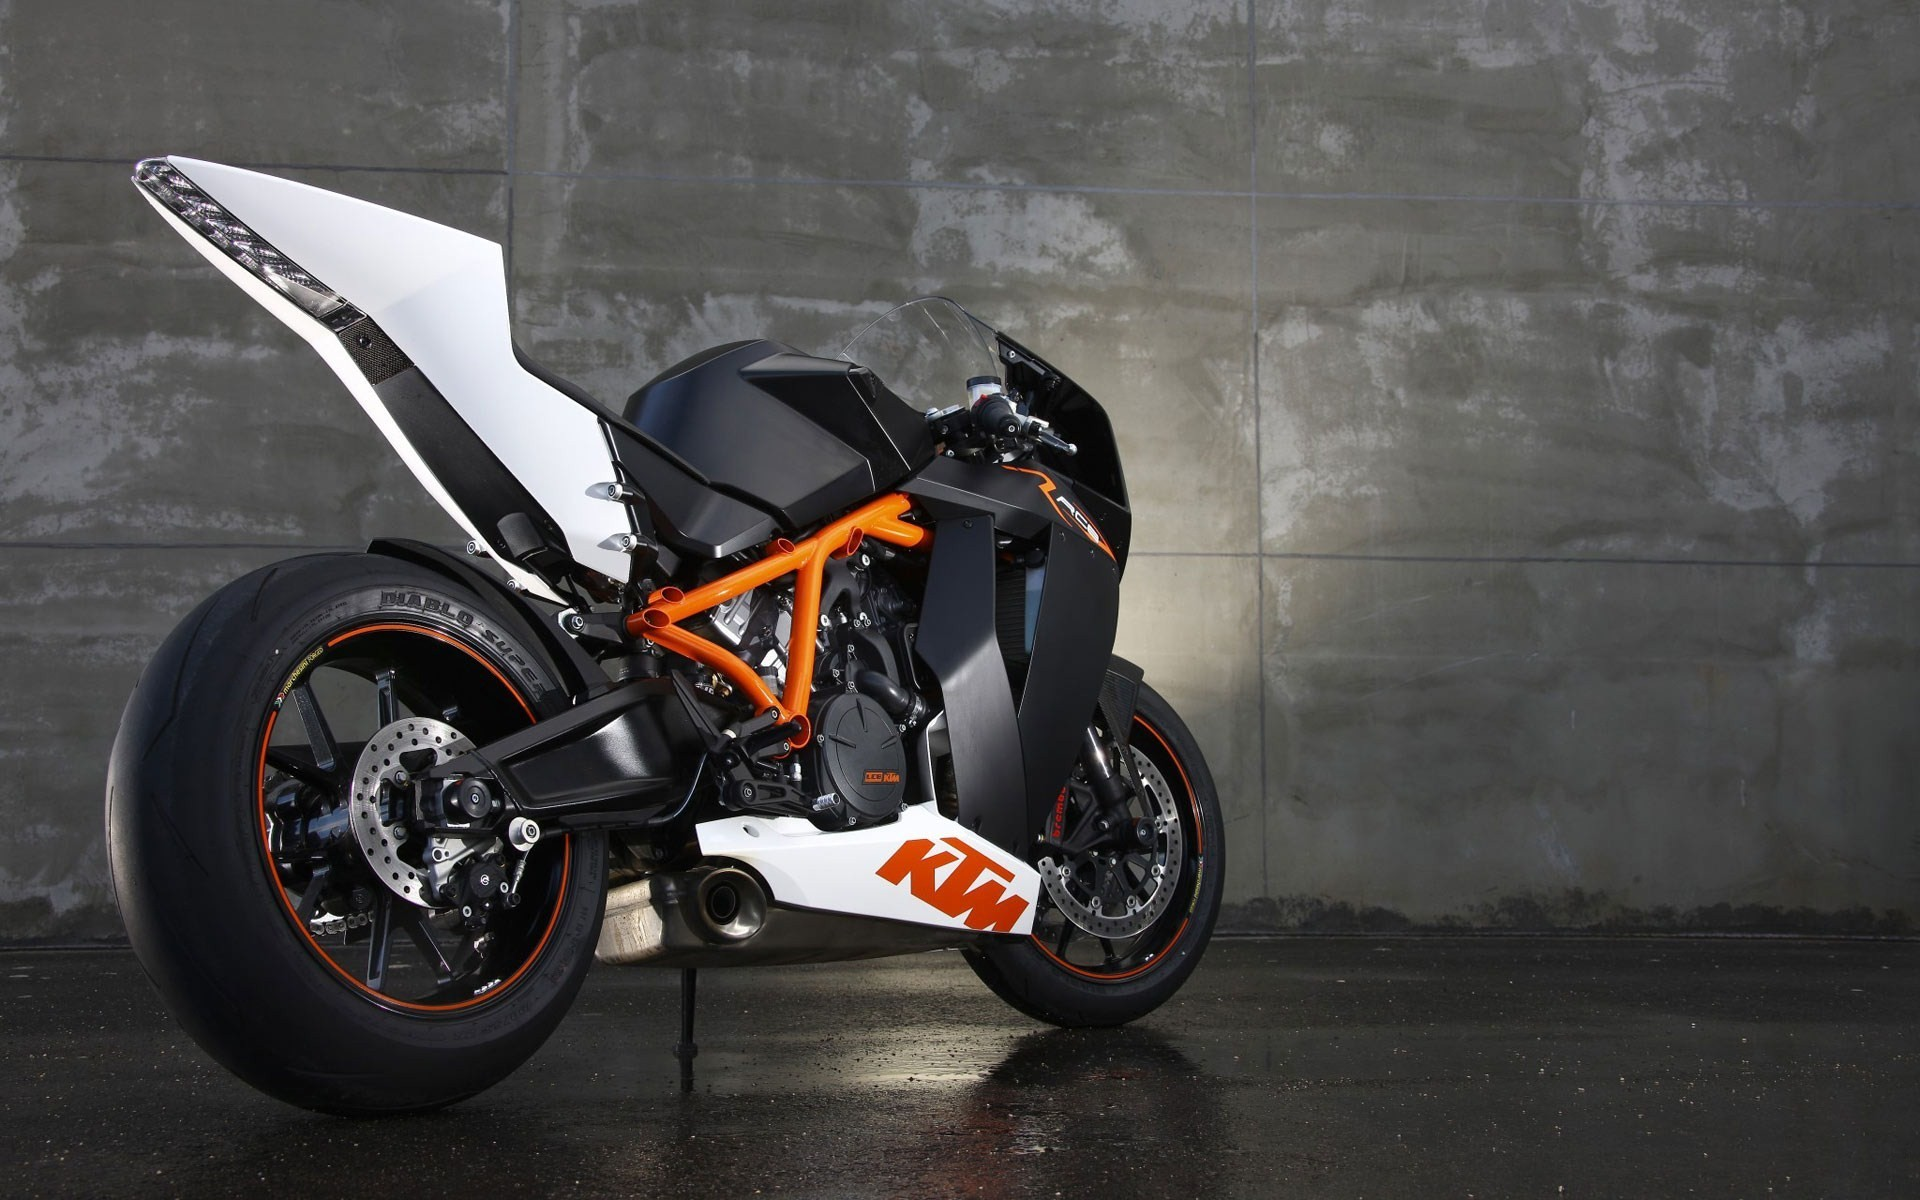 Sports Motorcycles bike KTM KTM RC8 1190 HD Wallpaper